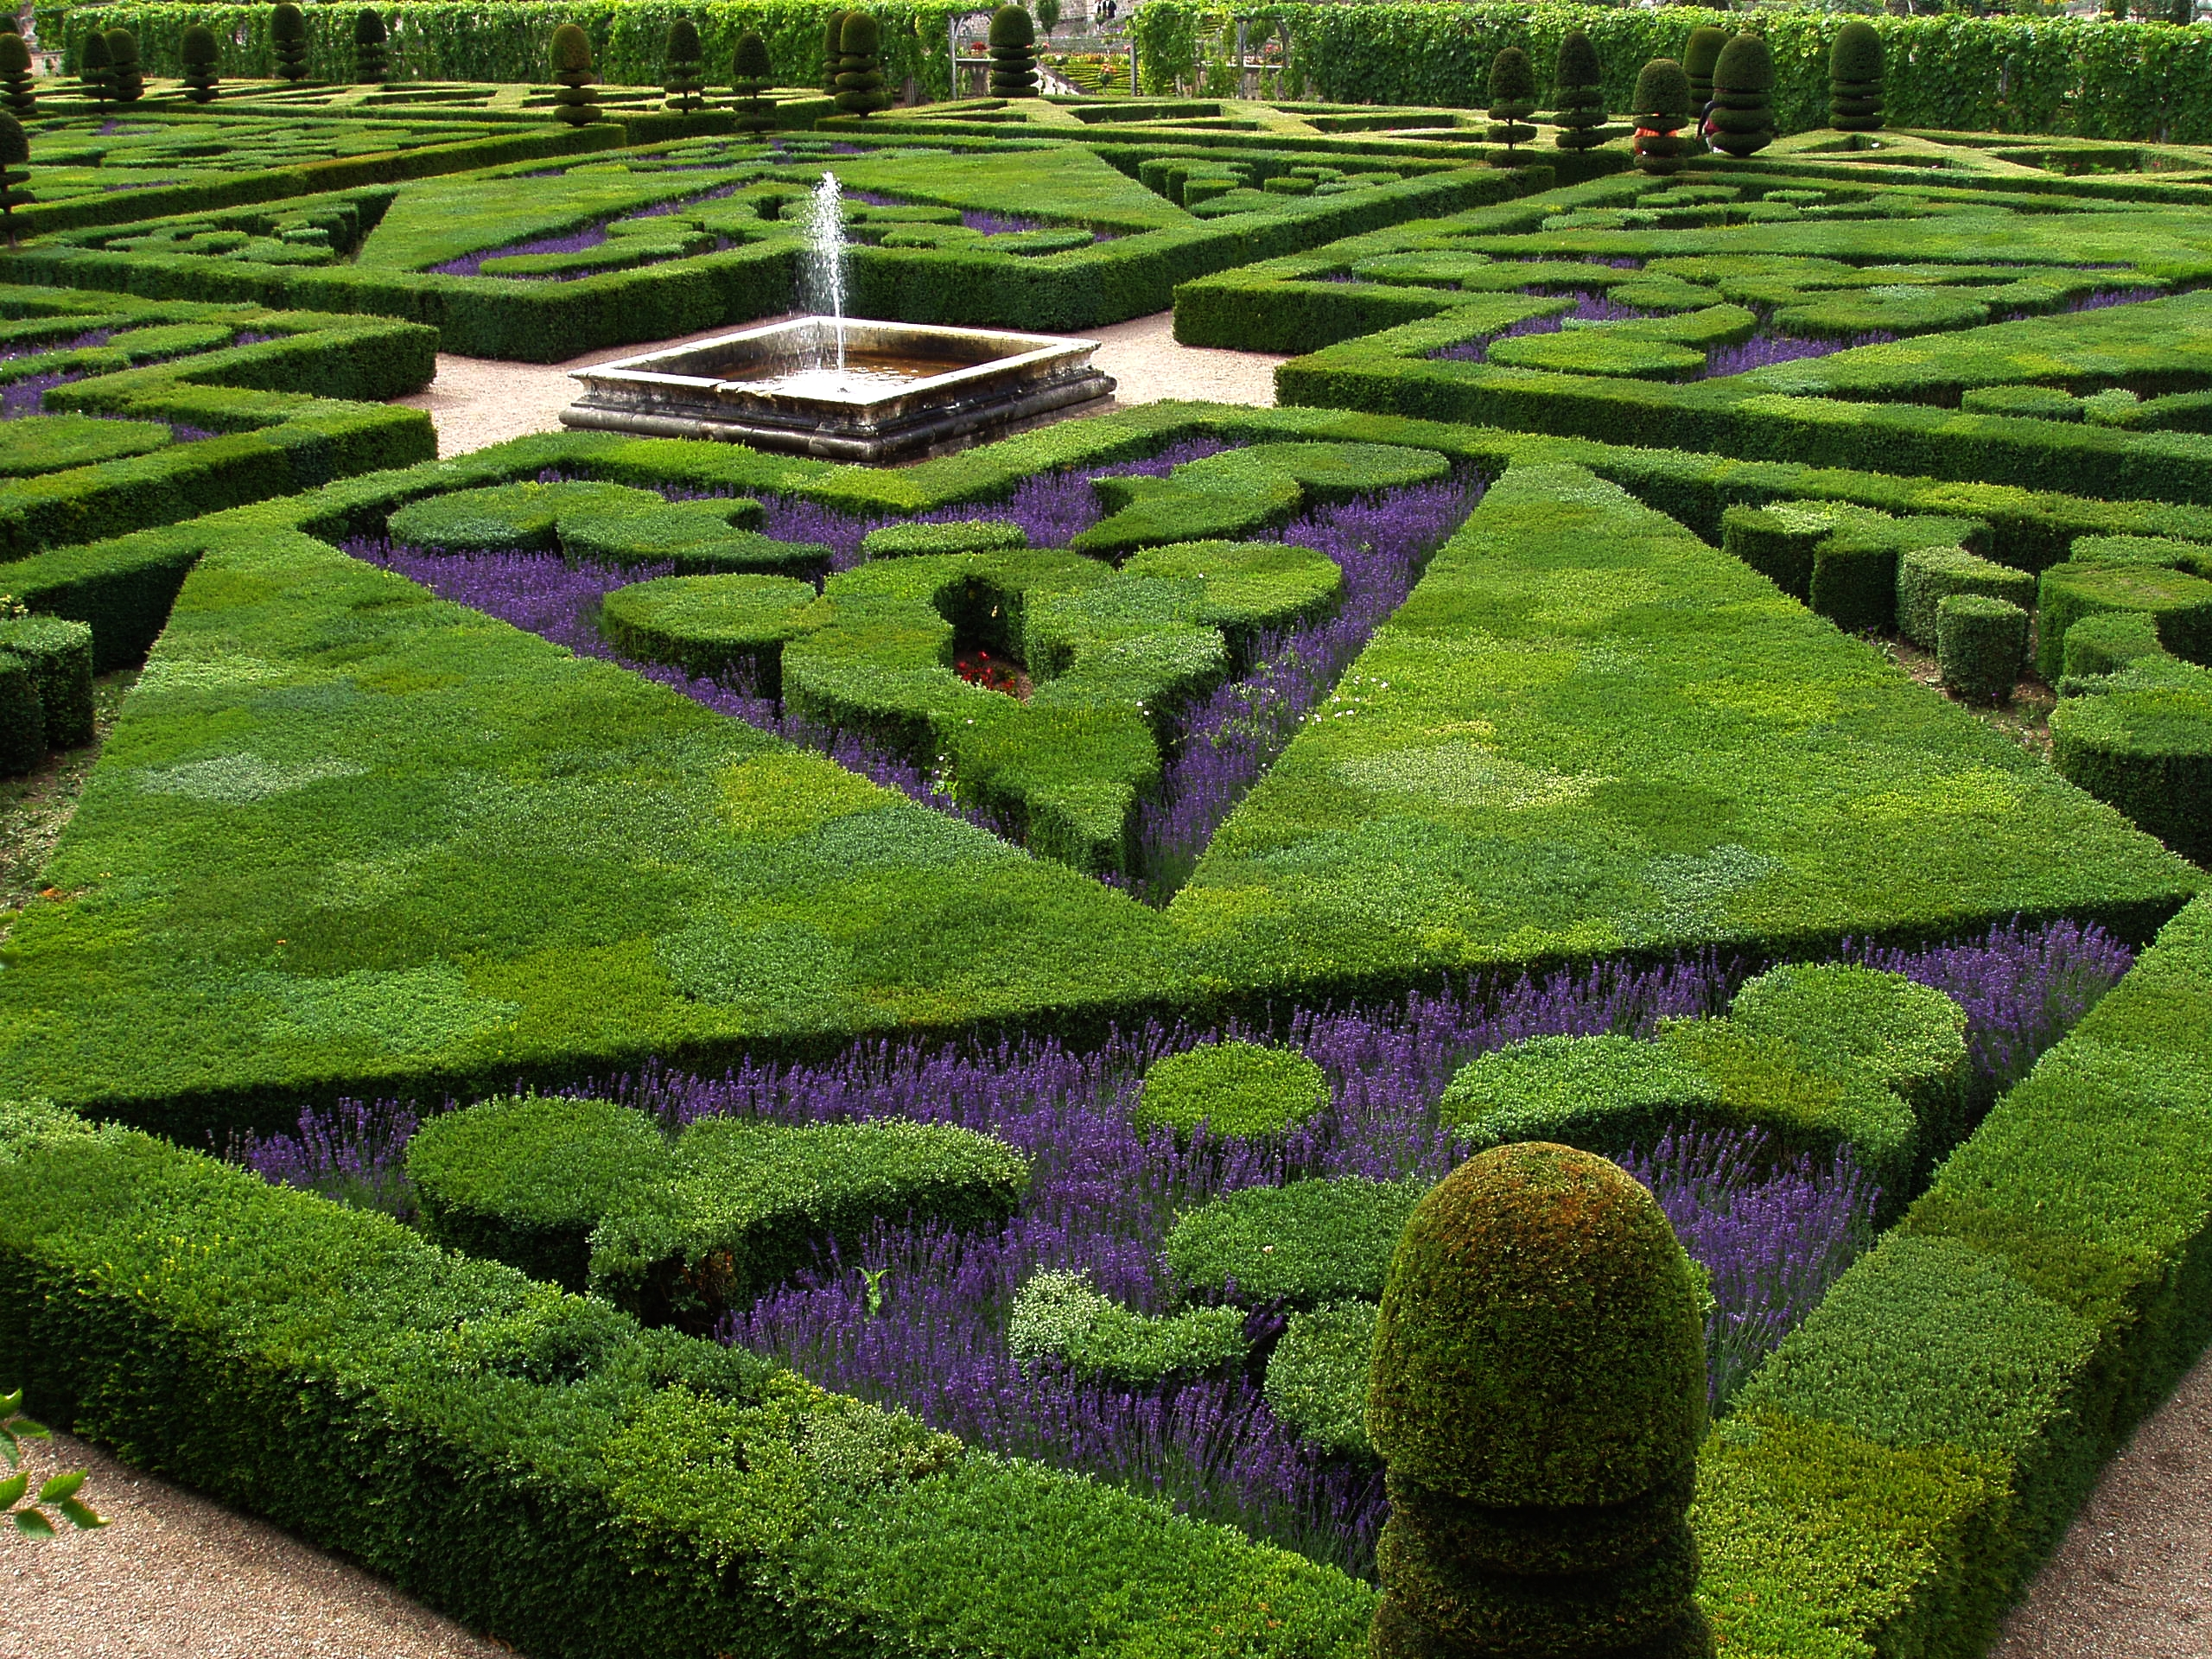 Garden of at Château de Villandry: Most Romantic Gardens in ... on heart labyrinth designs, greenhouse garden designs, christian prayer labyrinth designs, simple garden designs, water garden designs, rectangular prayer labyrinth designs, meditation garden designs, finger labyrinth designs, new mexico garden designs, school garden designs, 6 path labyrinth designs, indoor labyrinth designs, informal herb garden designs, dog park designs, shade garden designs, knockout rose garden designs, labyrinth backyard designs, spiral designs, stage garden designs, walking labyrinth designs,